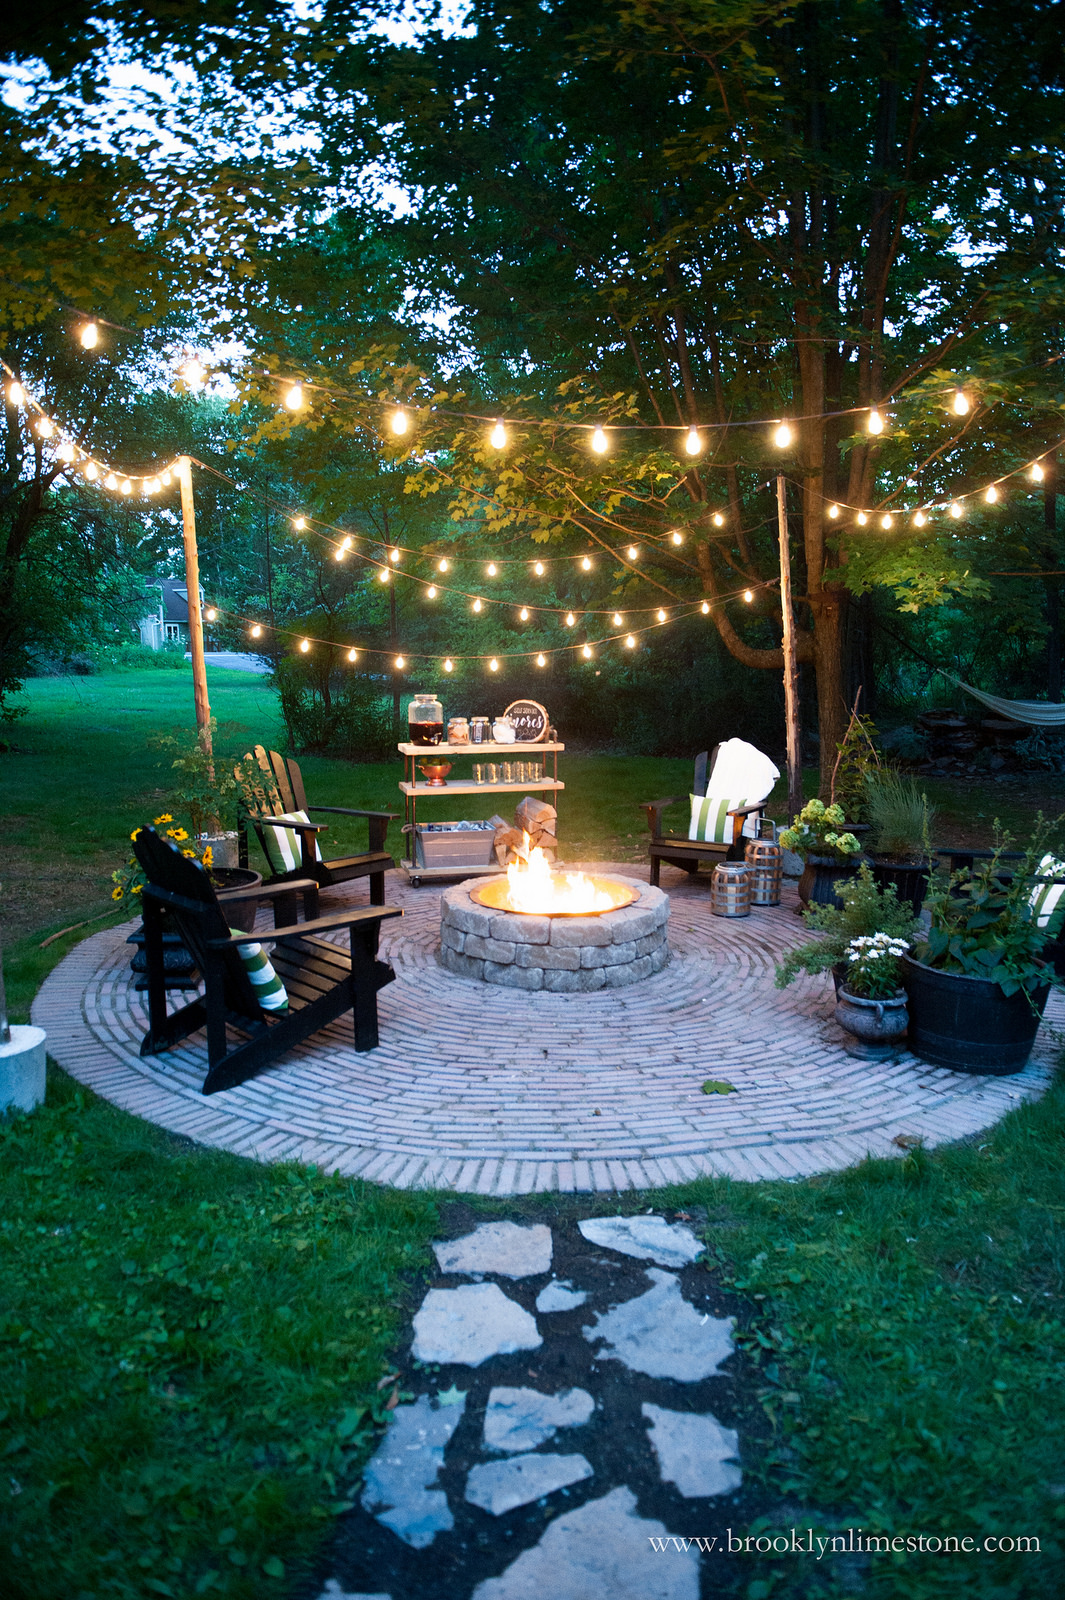 Brick-Lined DIY Fire Pit and Outdoor Seating Area